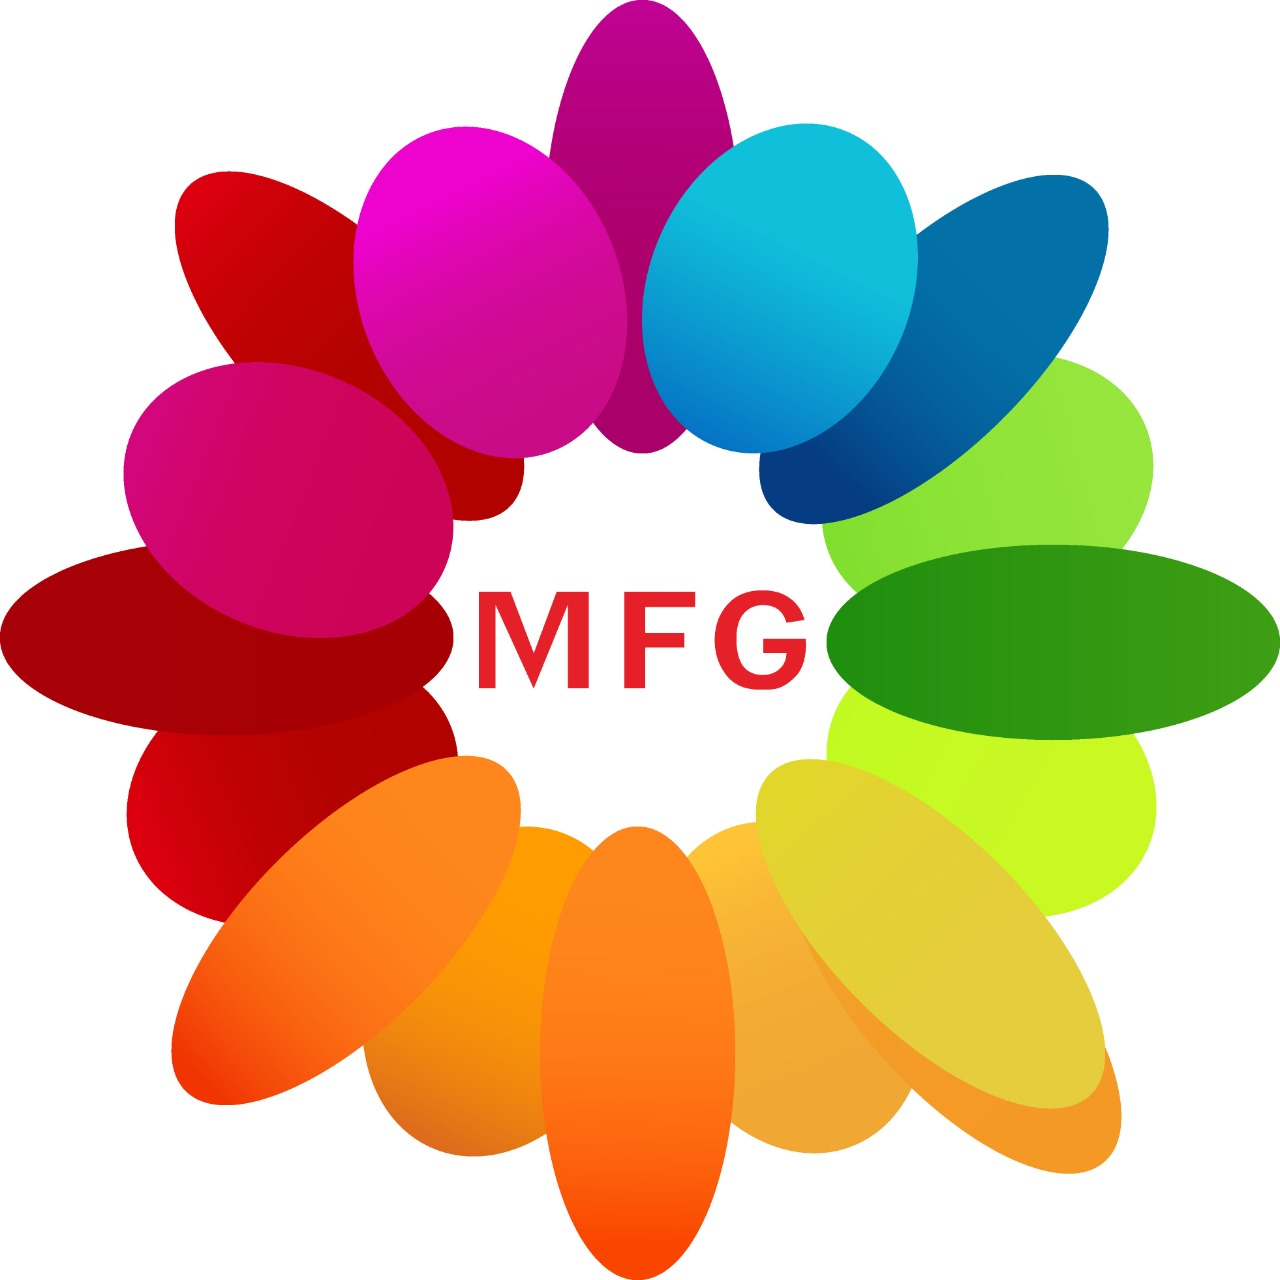 1 Kg Black Forest Cake With 16 pcs Ferrero Rocher Chocolates